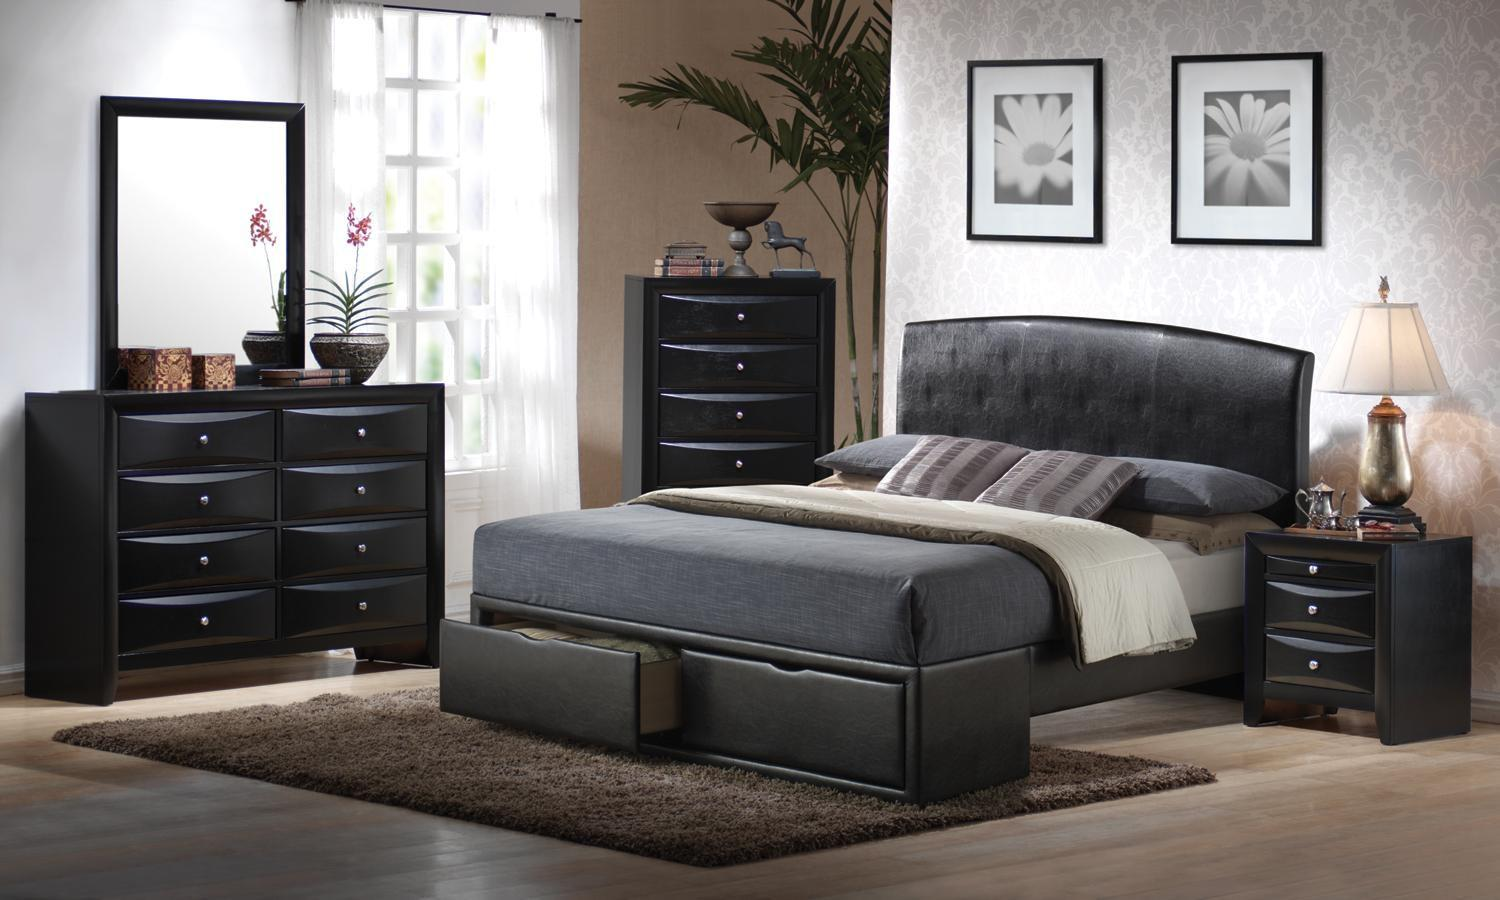 Image of: Queen Size Bedroom Furniture Pictures